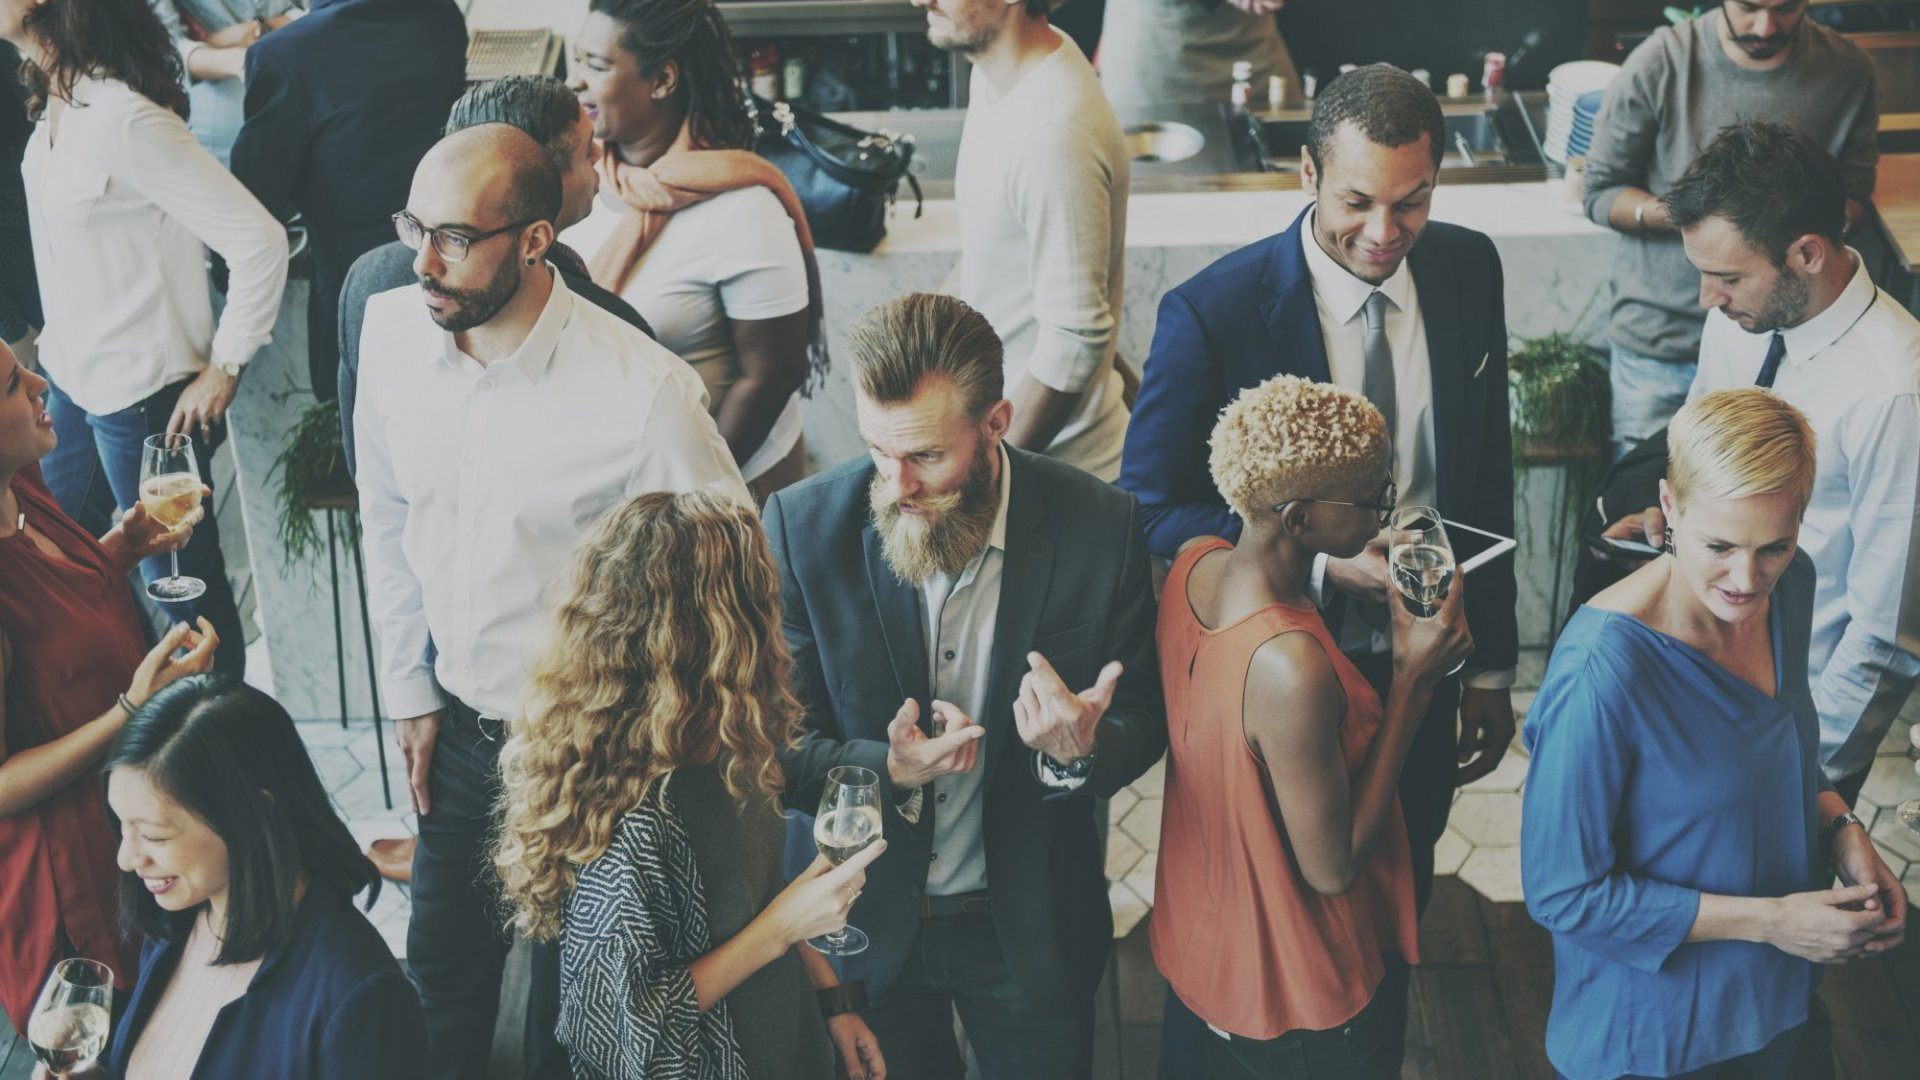 The 1 Networking Rule 99 Percent of People Are Afraid to Follow, but Should